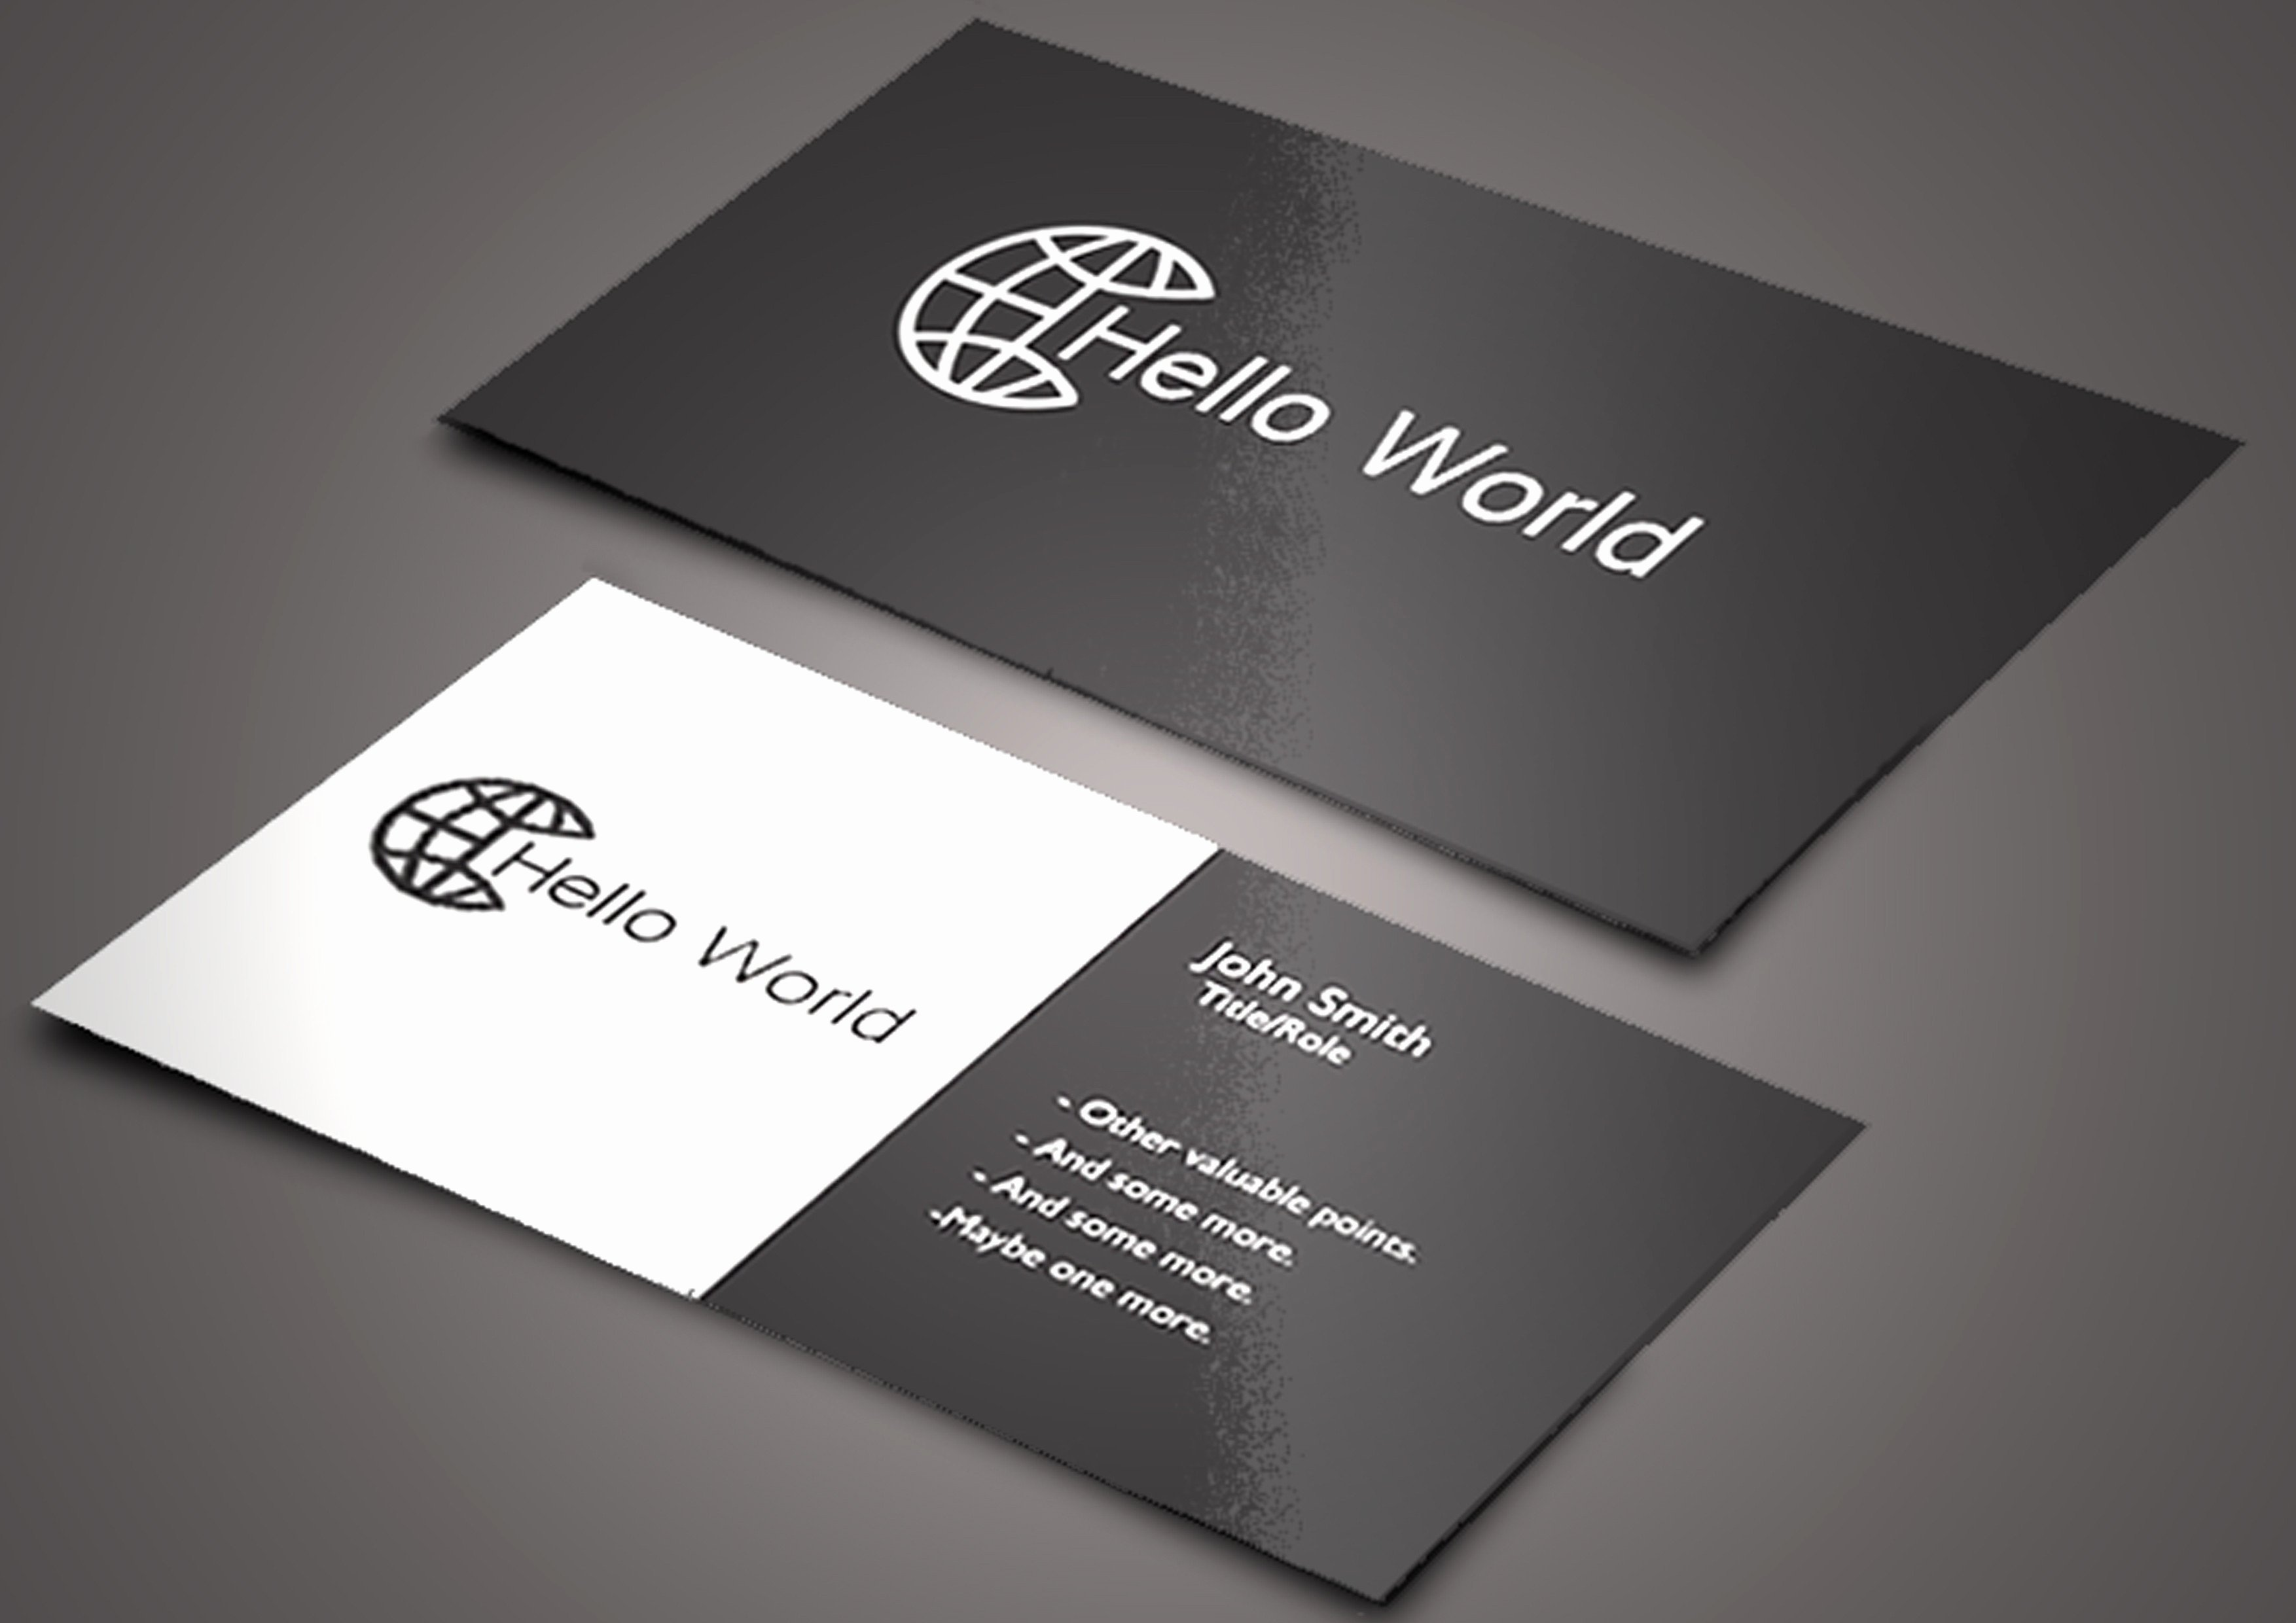 Rounded Business Card Template Inspirational Business Card Rounded Corners Template Beautiful Business